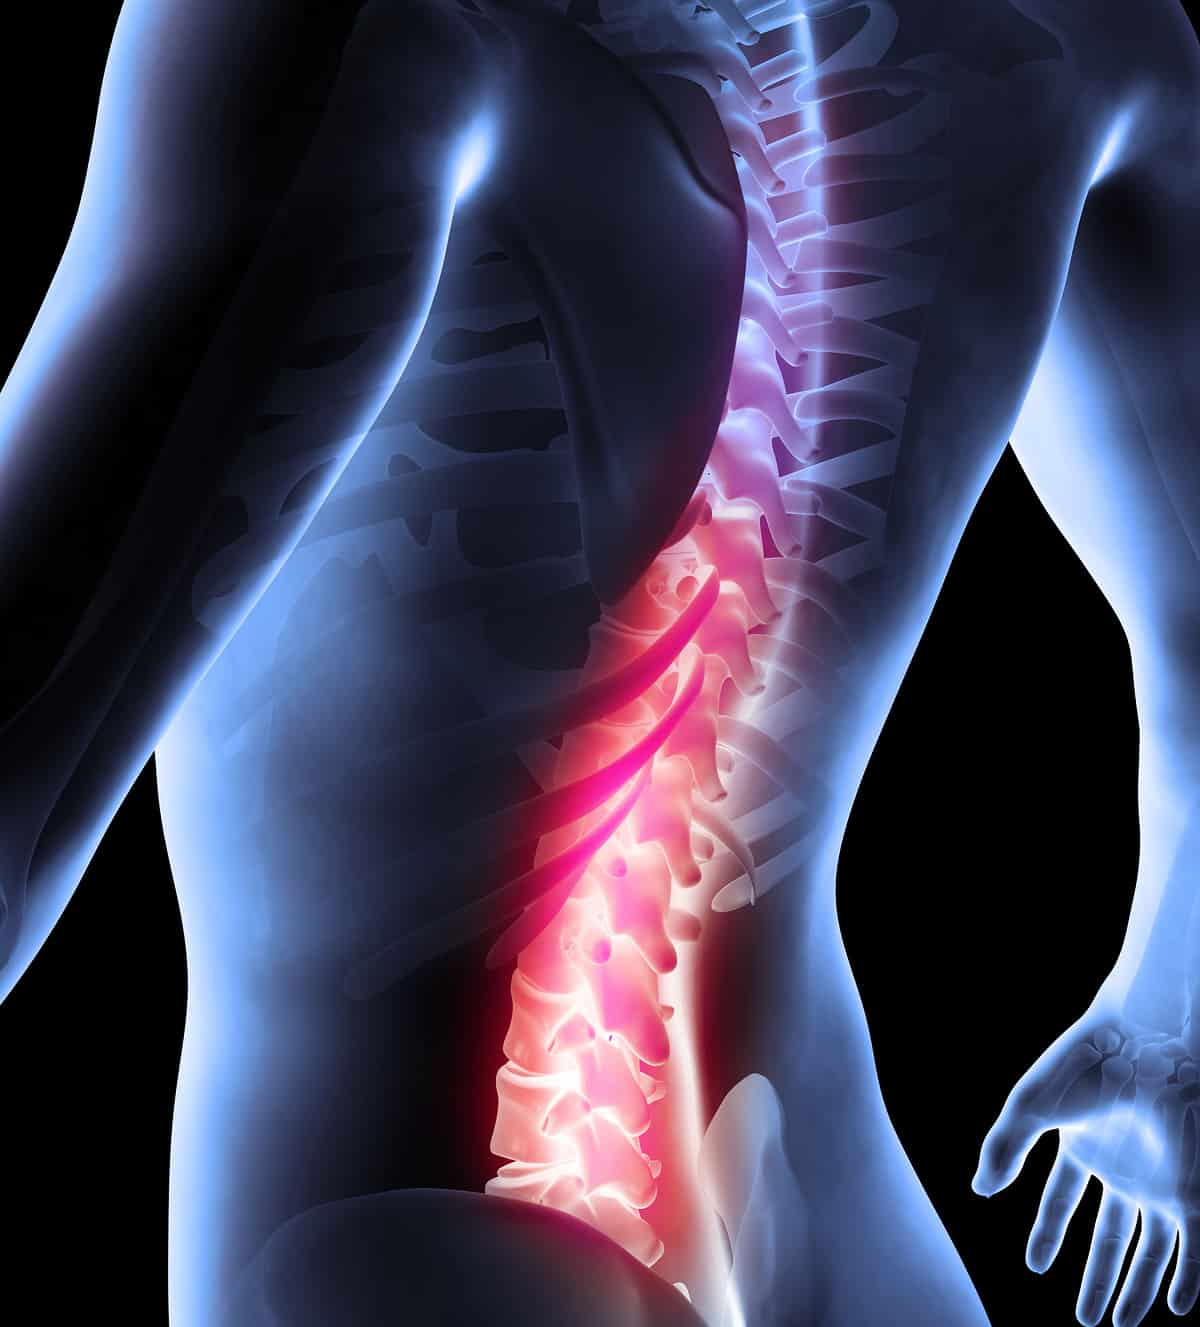 How to Effectively Treat Lower Back Pain